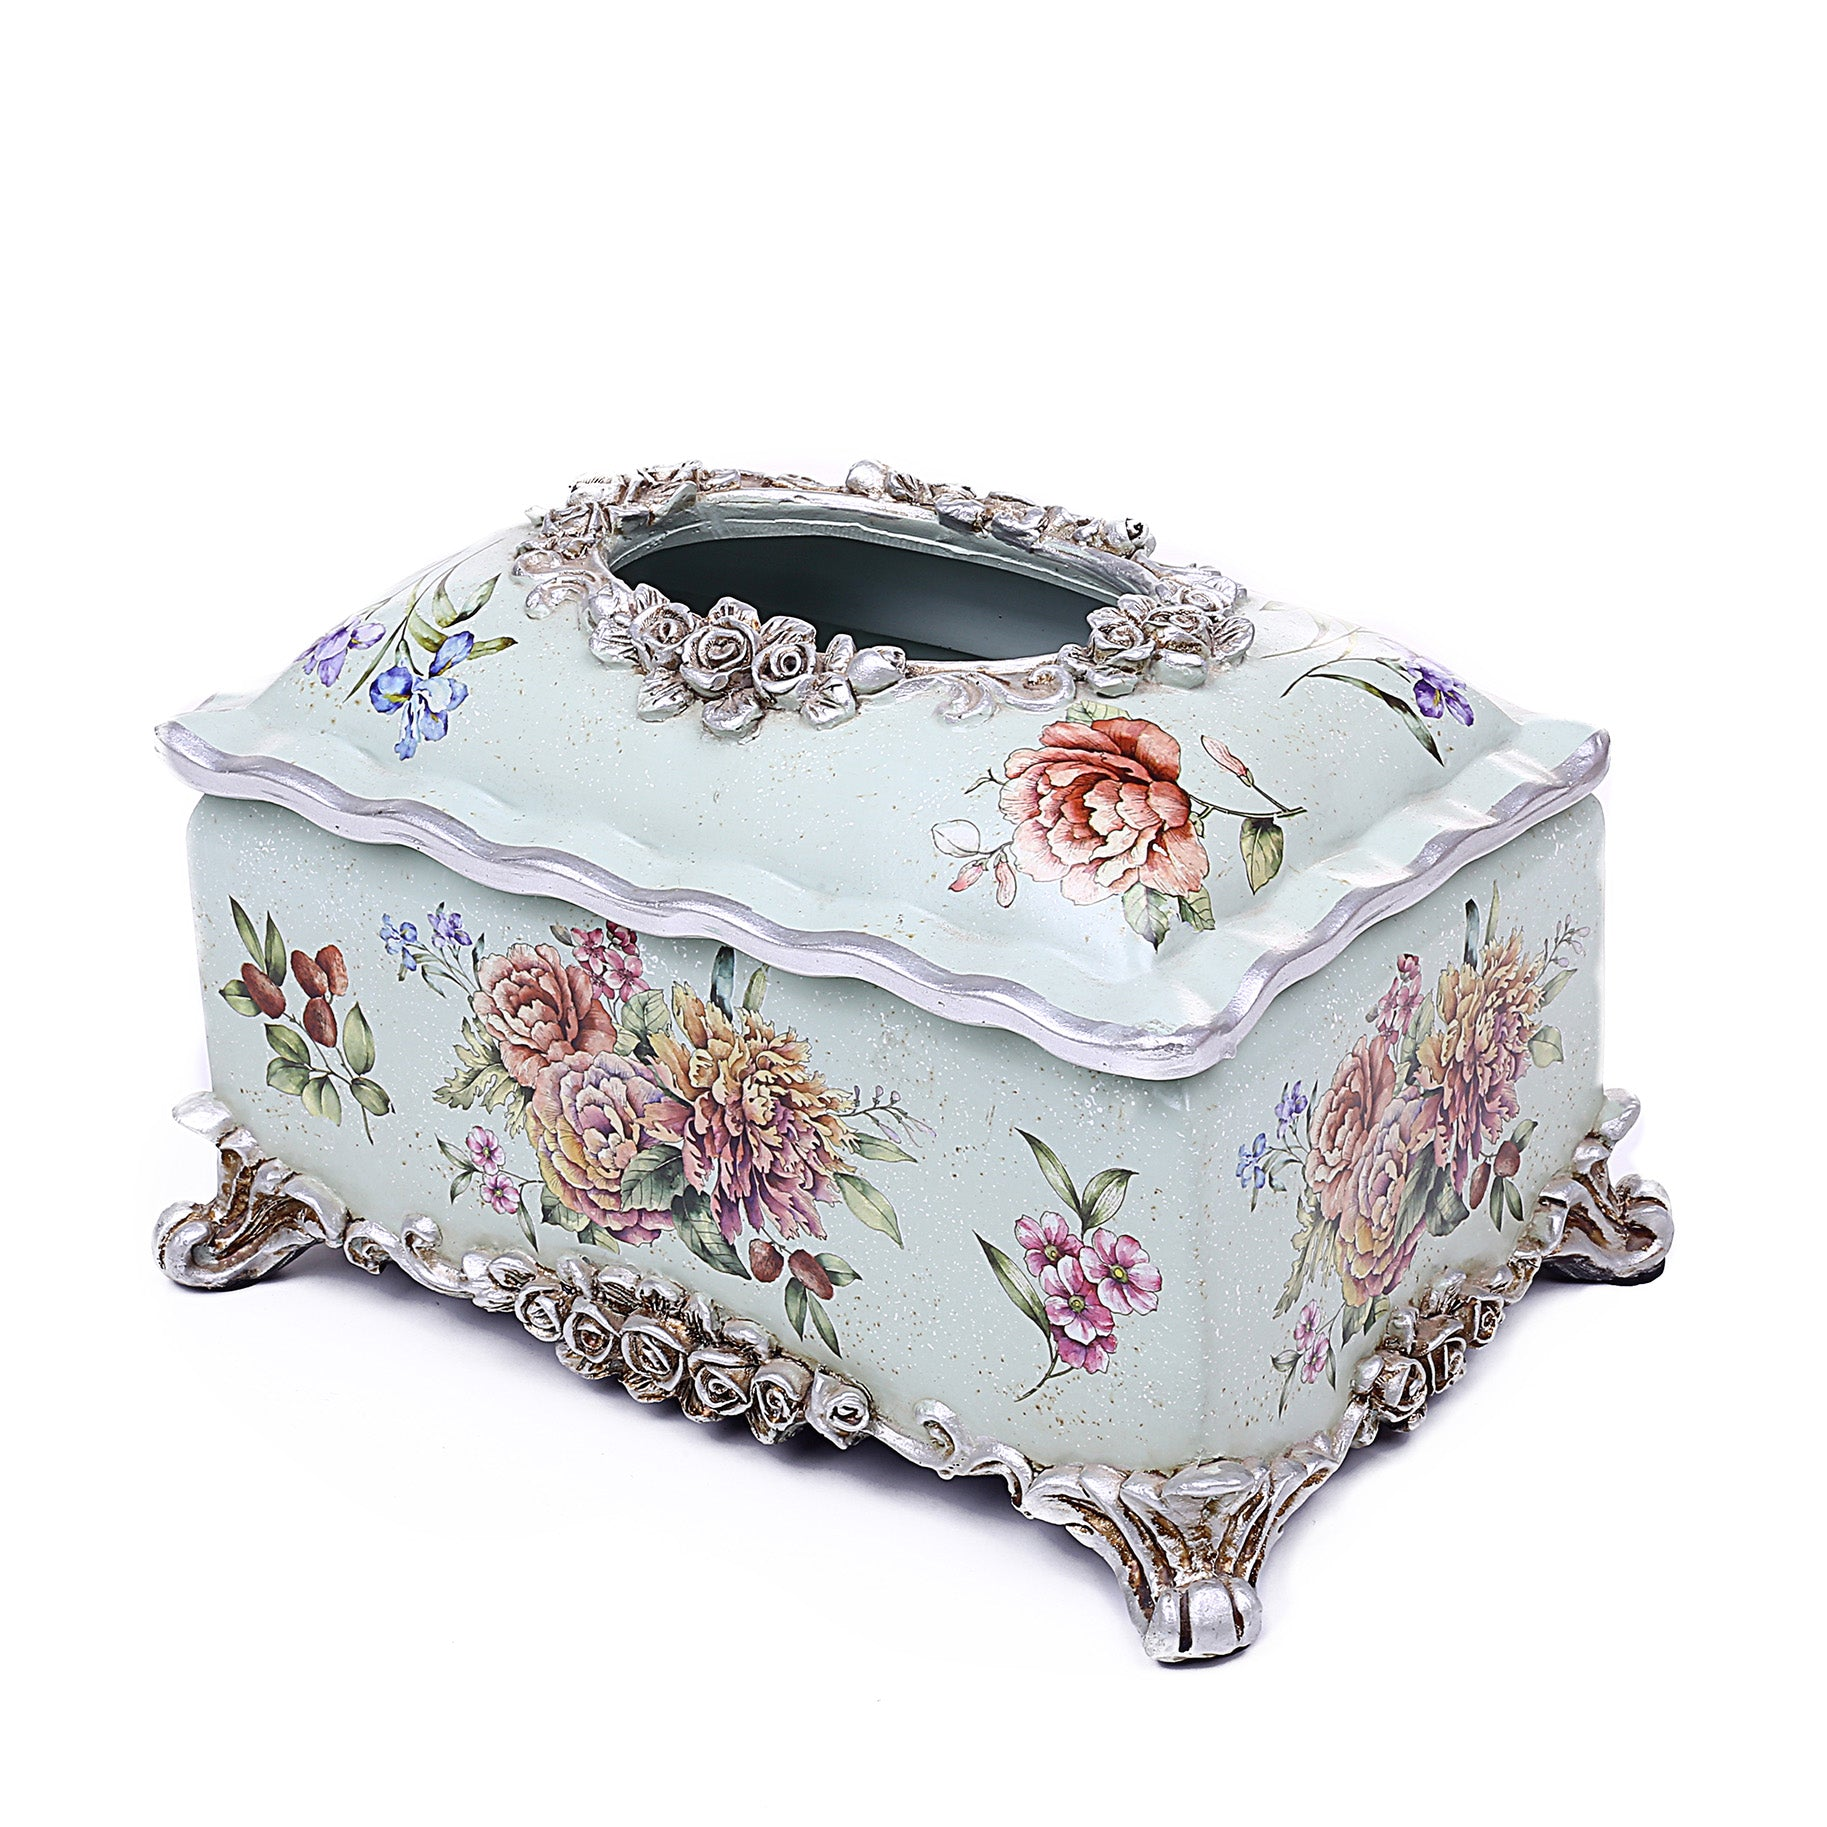 Flower Design Tissue Box